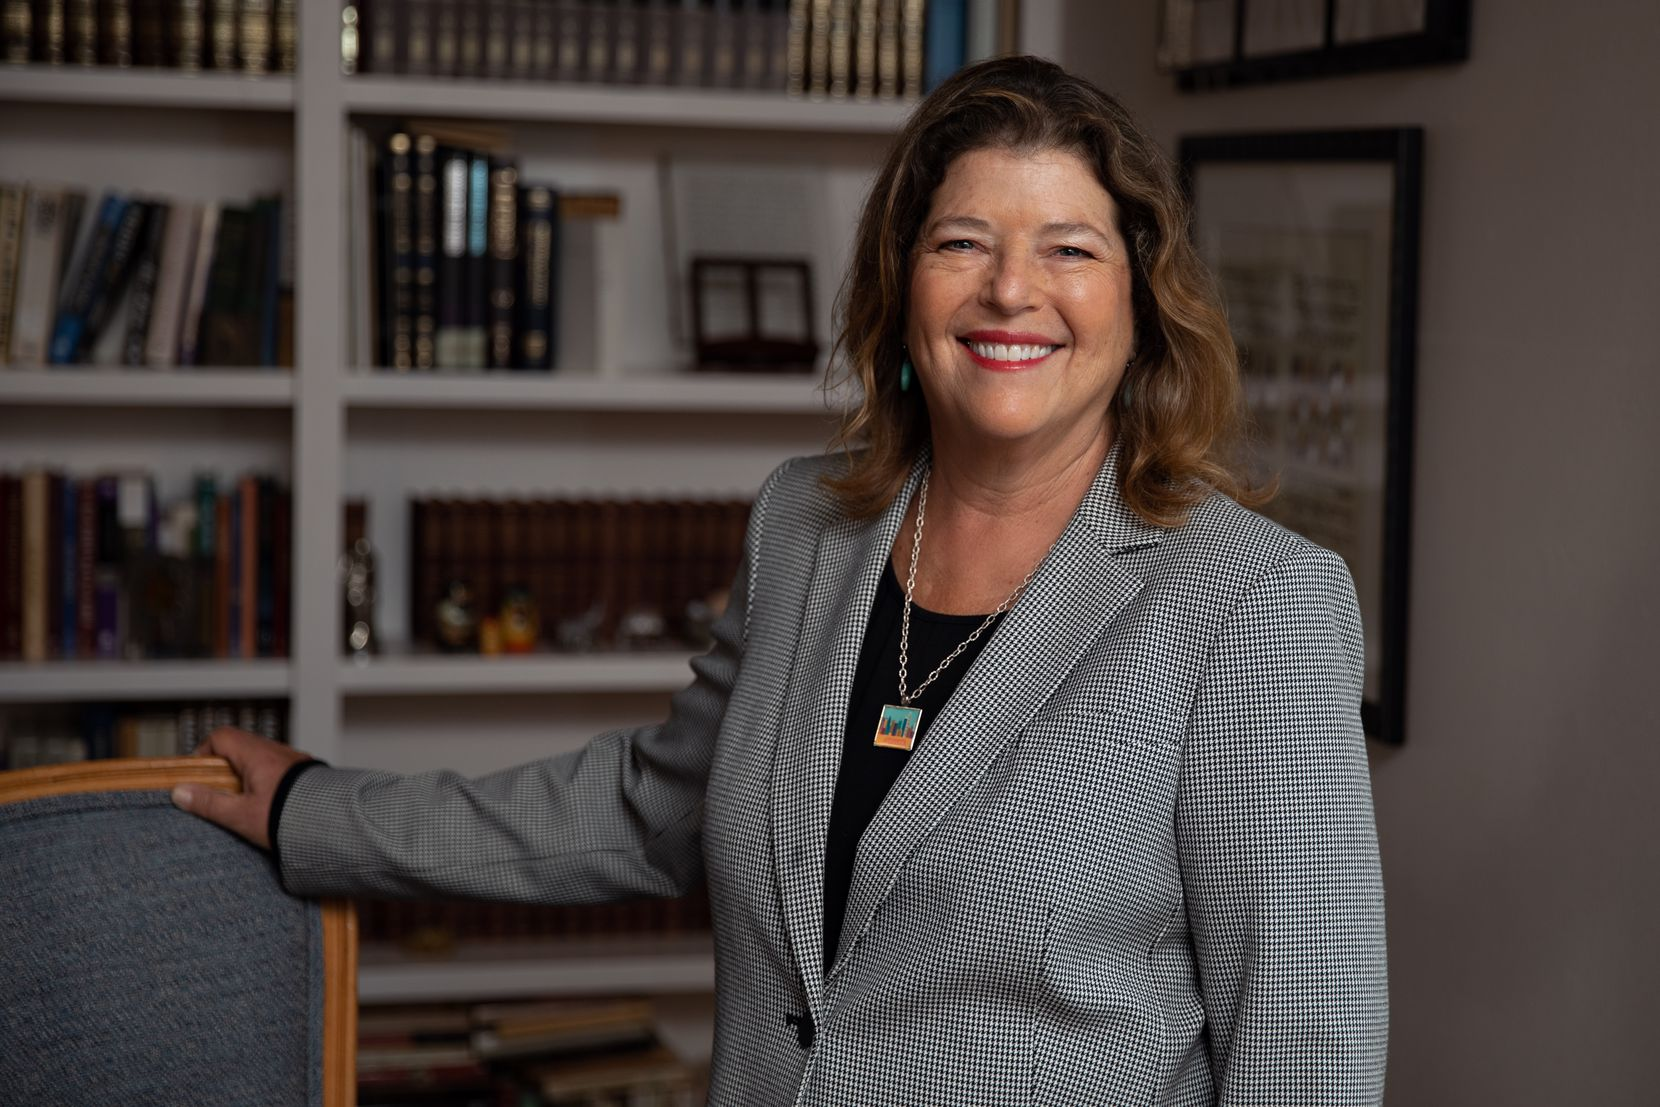 Jaynie Schultz, pictured in her home on May 20, 2021, is running to represent District 11 of the Dallas City Council. She's one of two candidates competing in the June 5 runoff for the open council seat. (Shelby Tauber/Special Contributor)